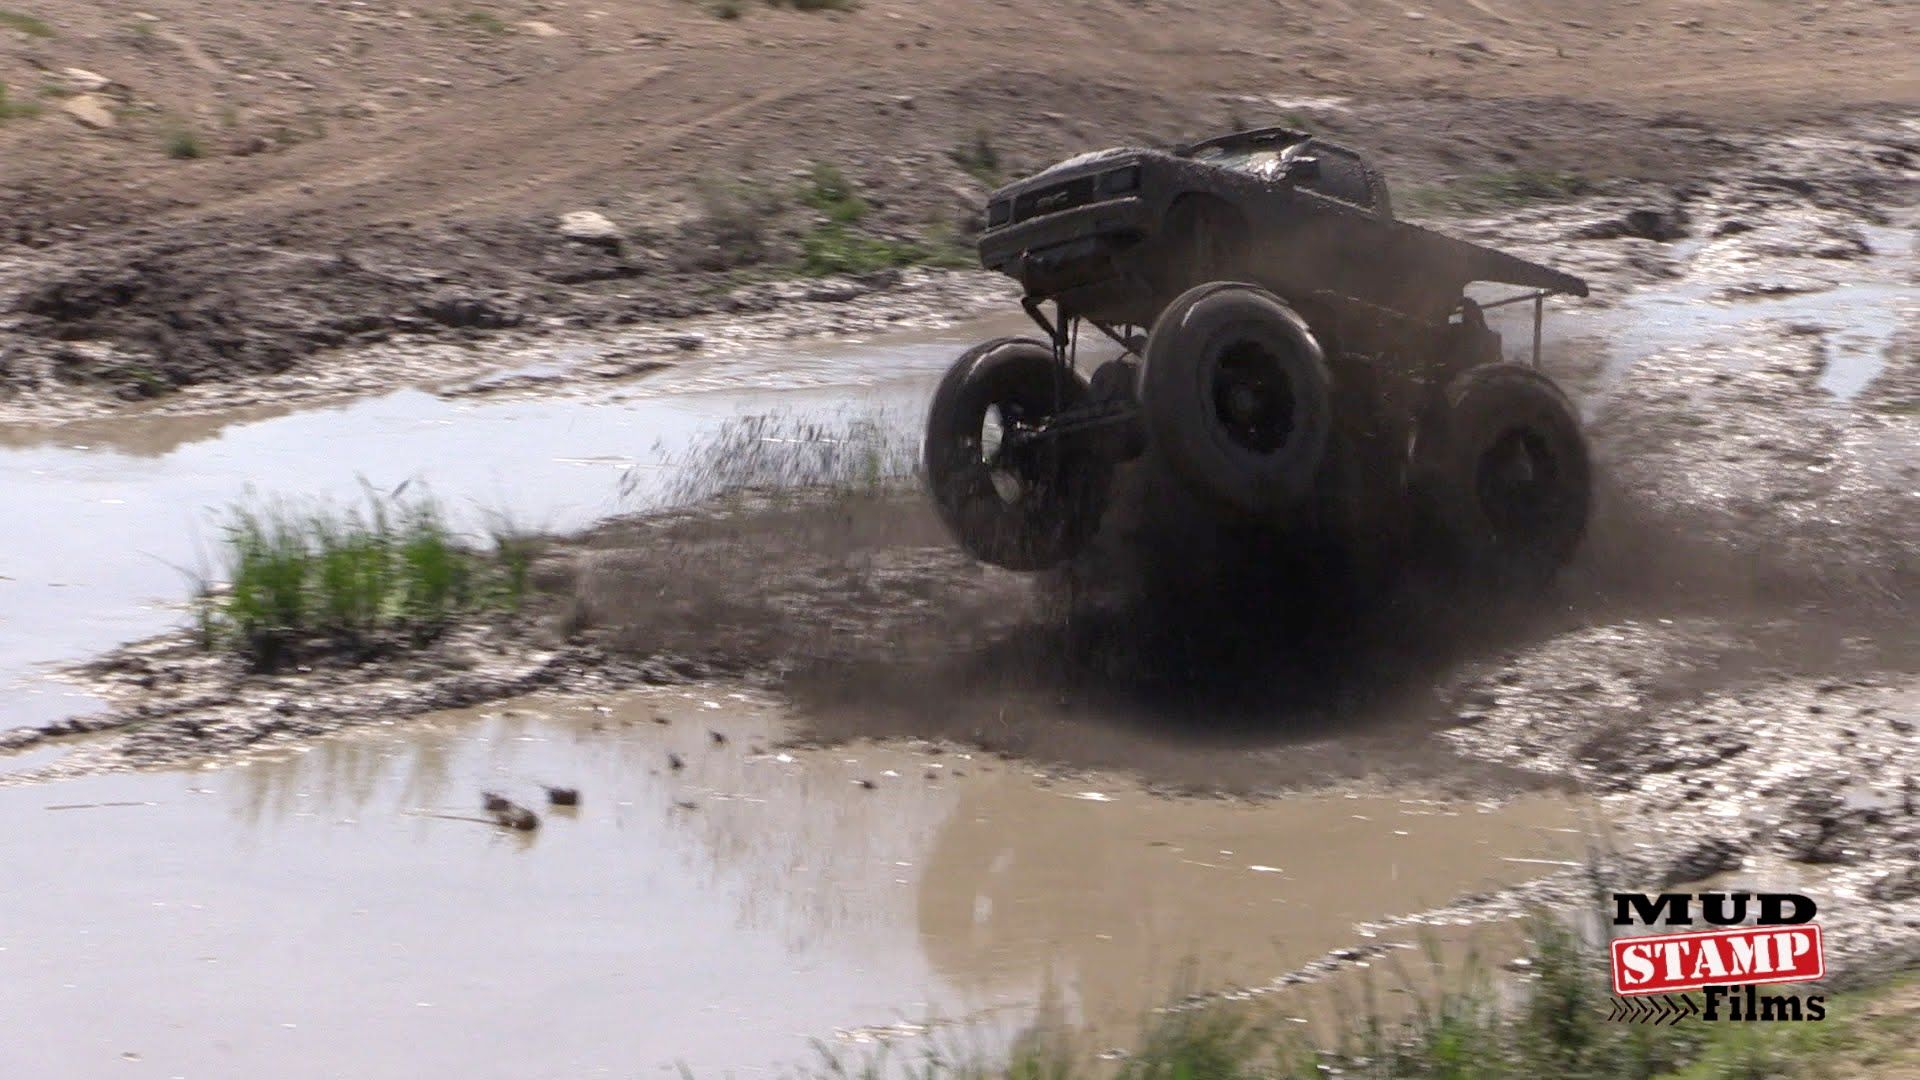 Pin On Mudding